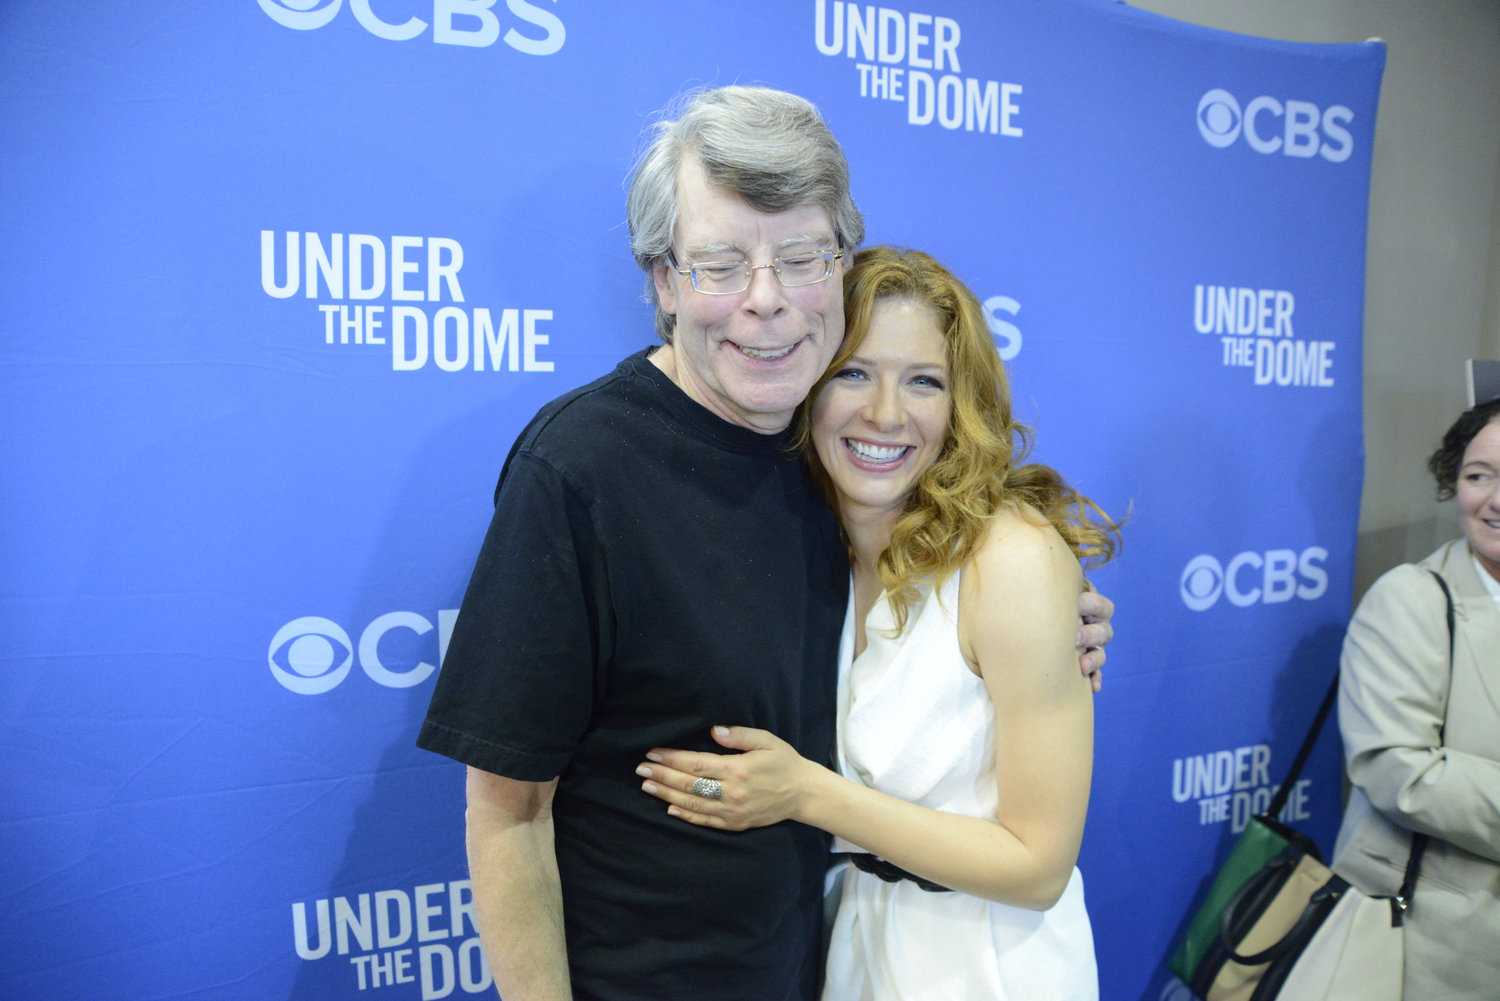 Stephen King and Rachelle Lefevre